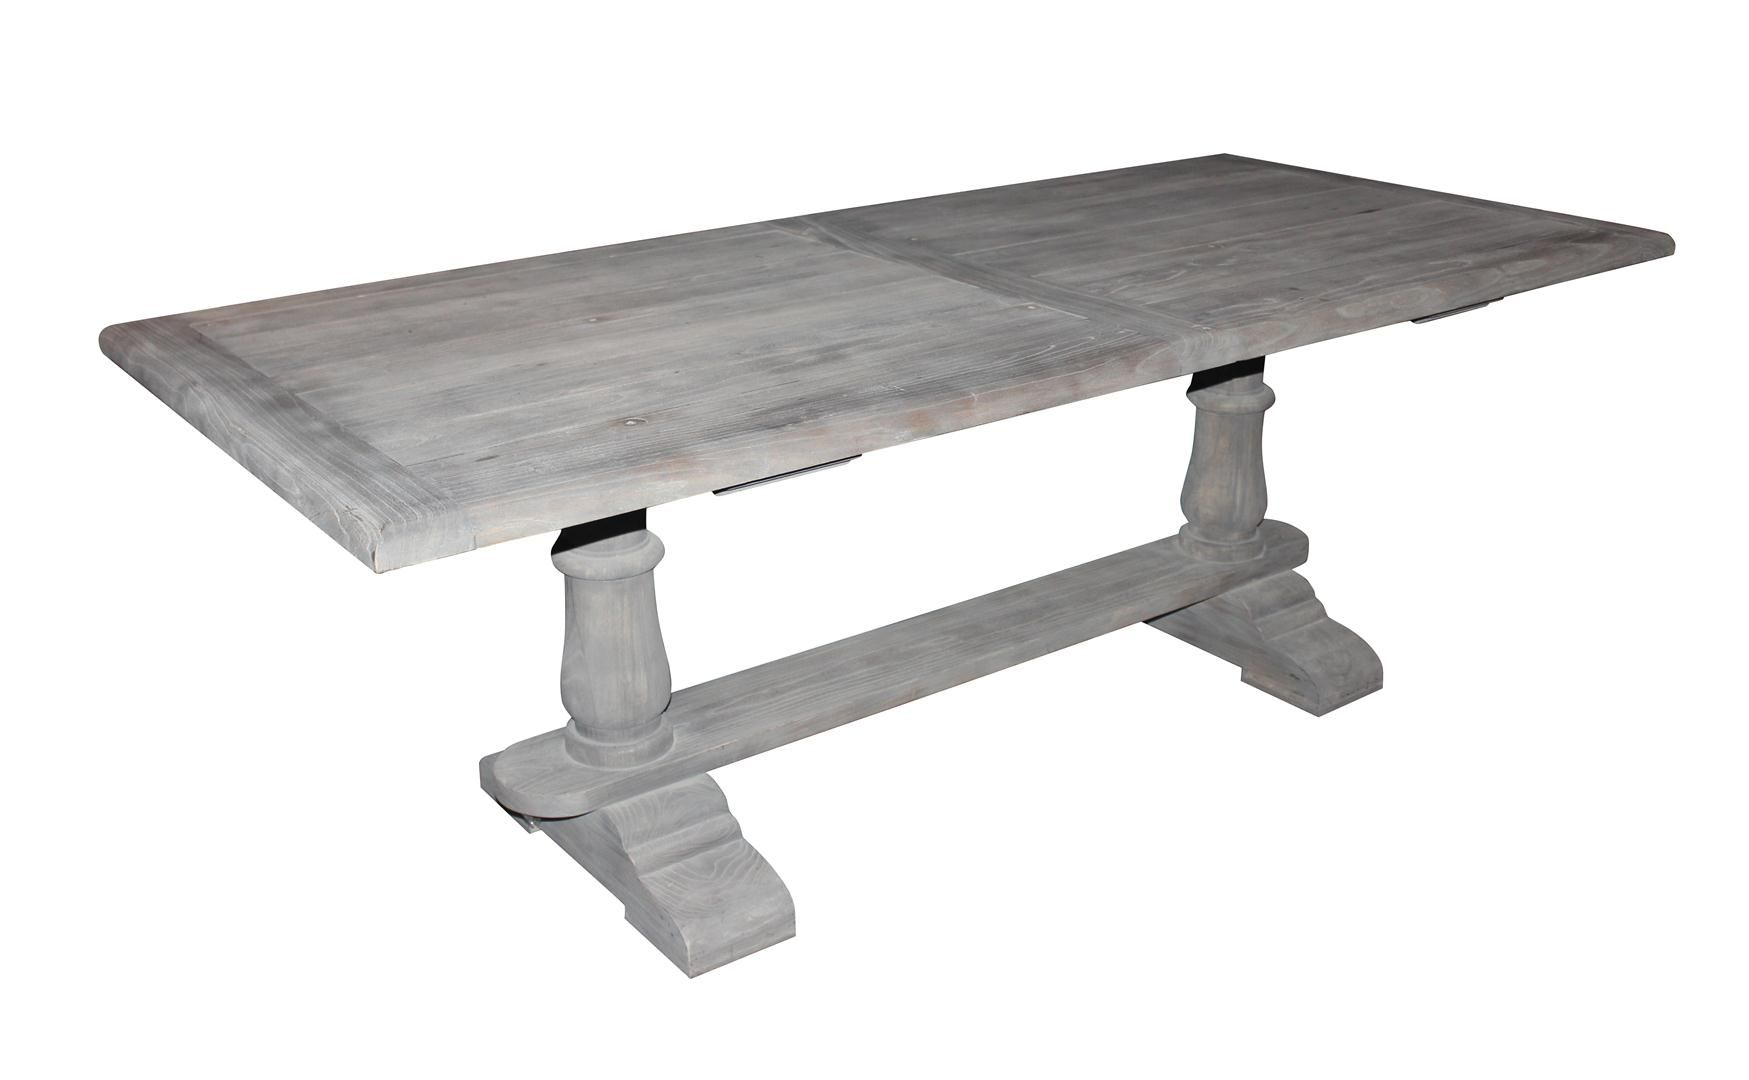 Grey Wood Kitchen Table Japanese Knives Solid Dining With Gray Washed Out Finish